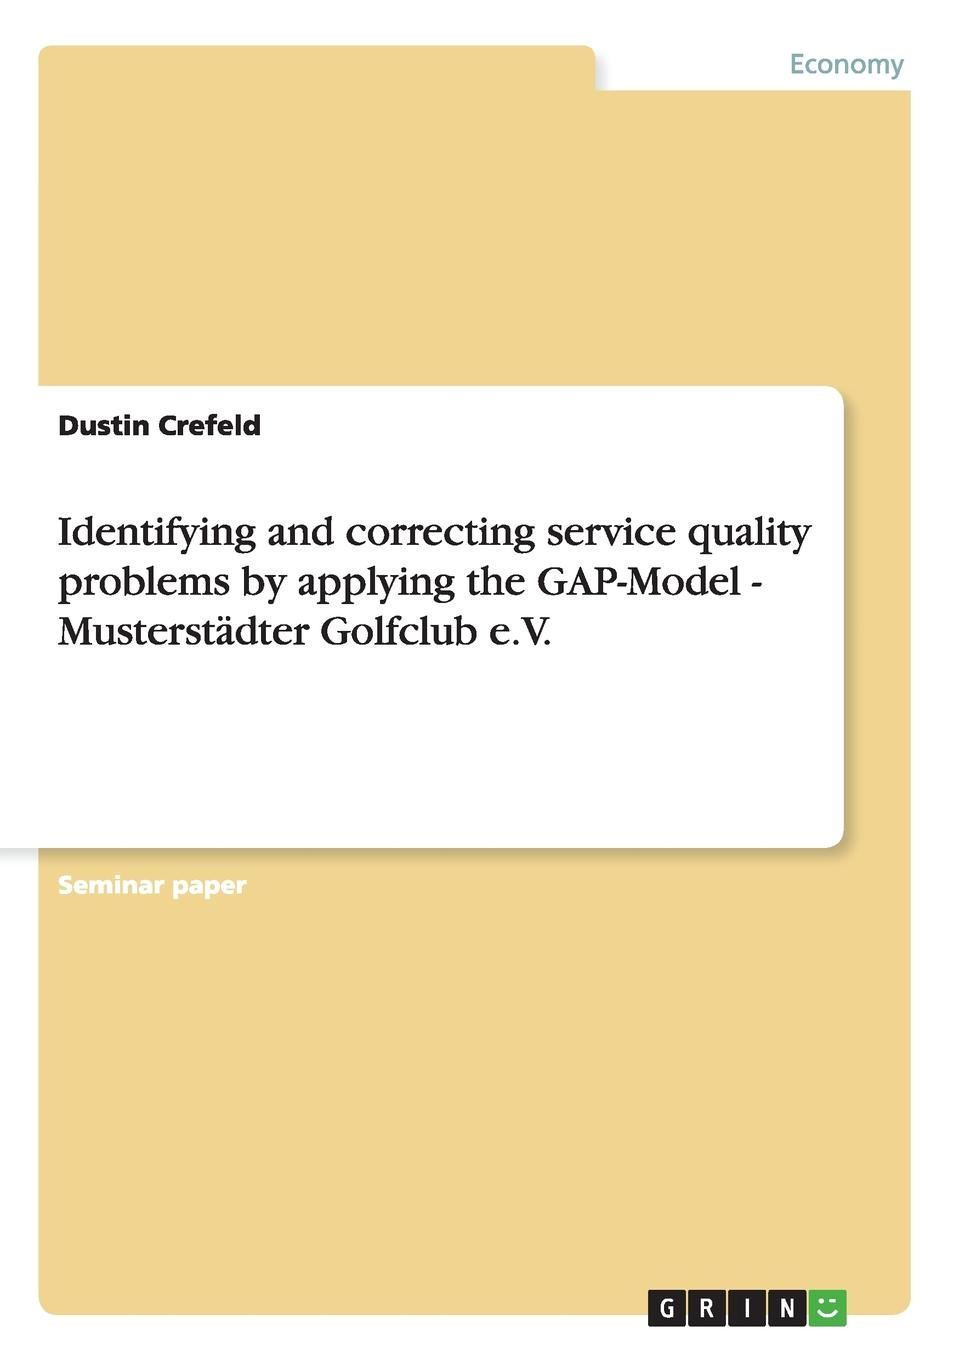 Dustin Crefeld Identifying and correcting service quality problems by applying the GAP-Model - Musterstadter Golfclub e.V. service management